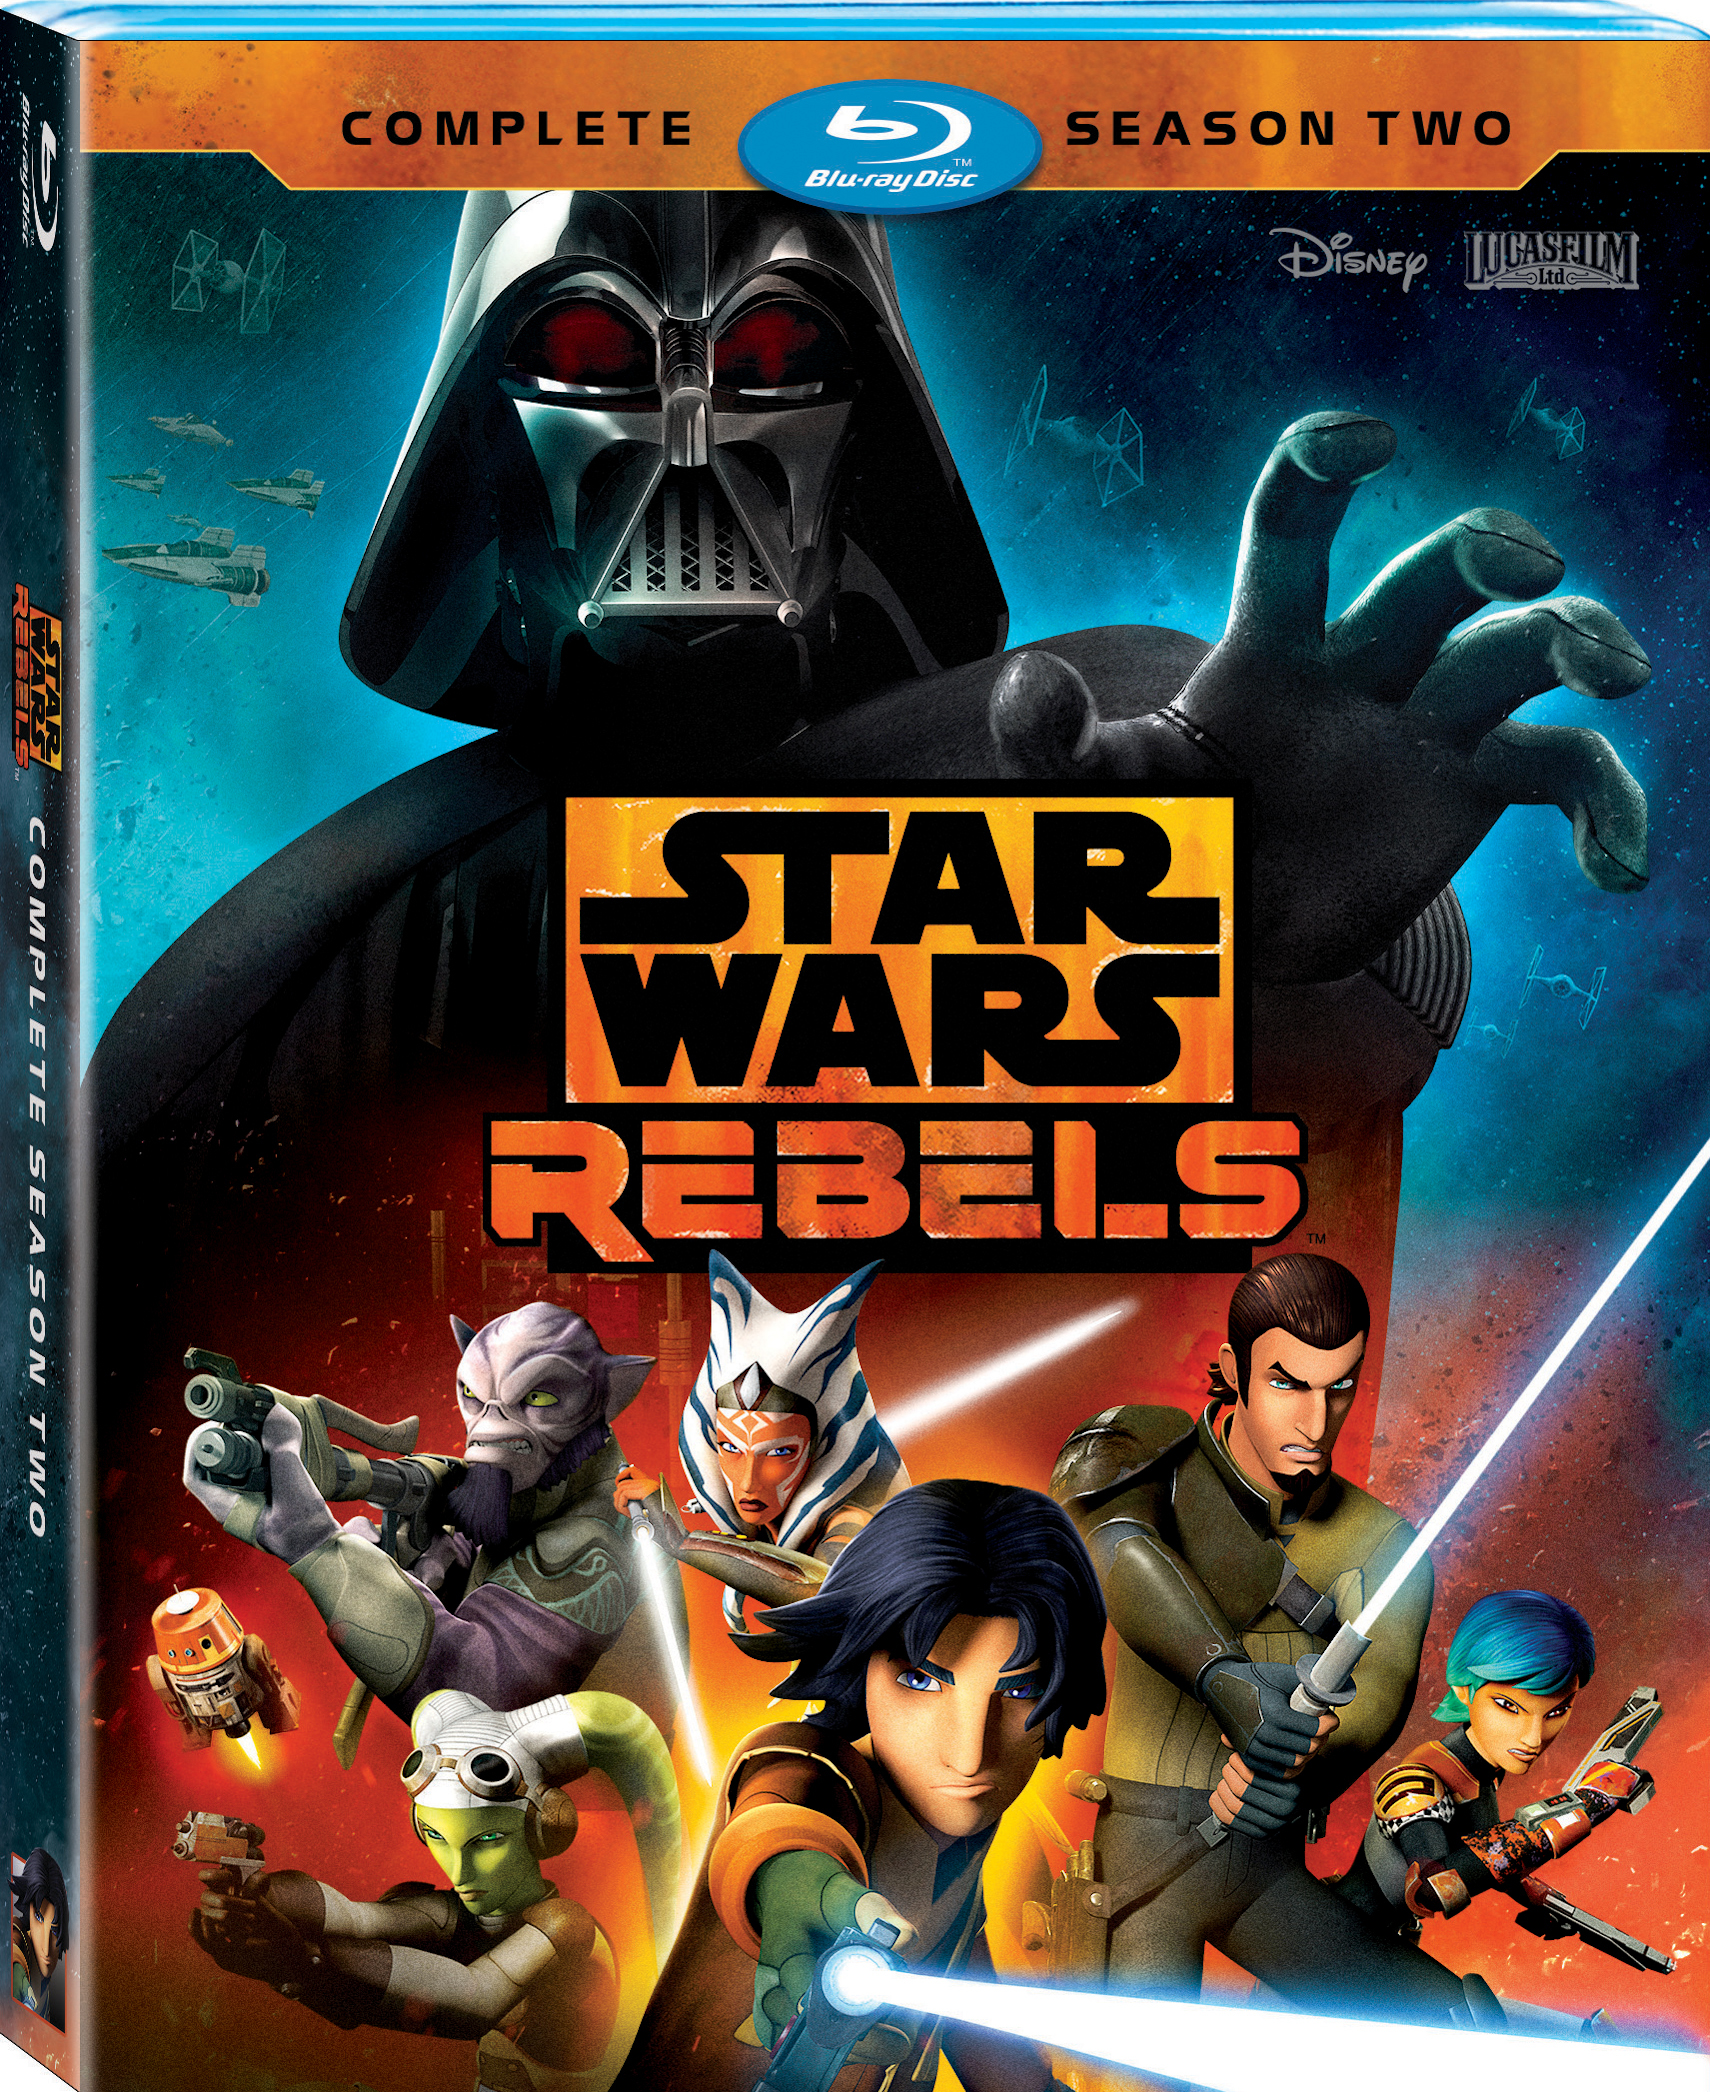 Blu-Ray Review: Star Wars Rebels Complete Season Two